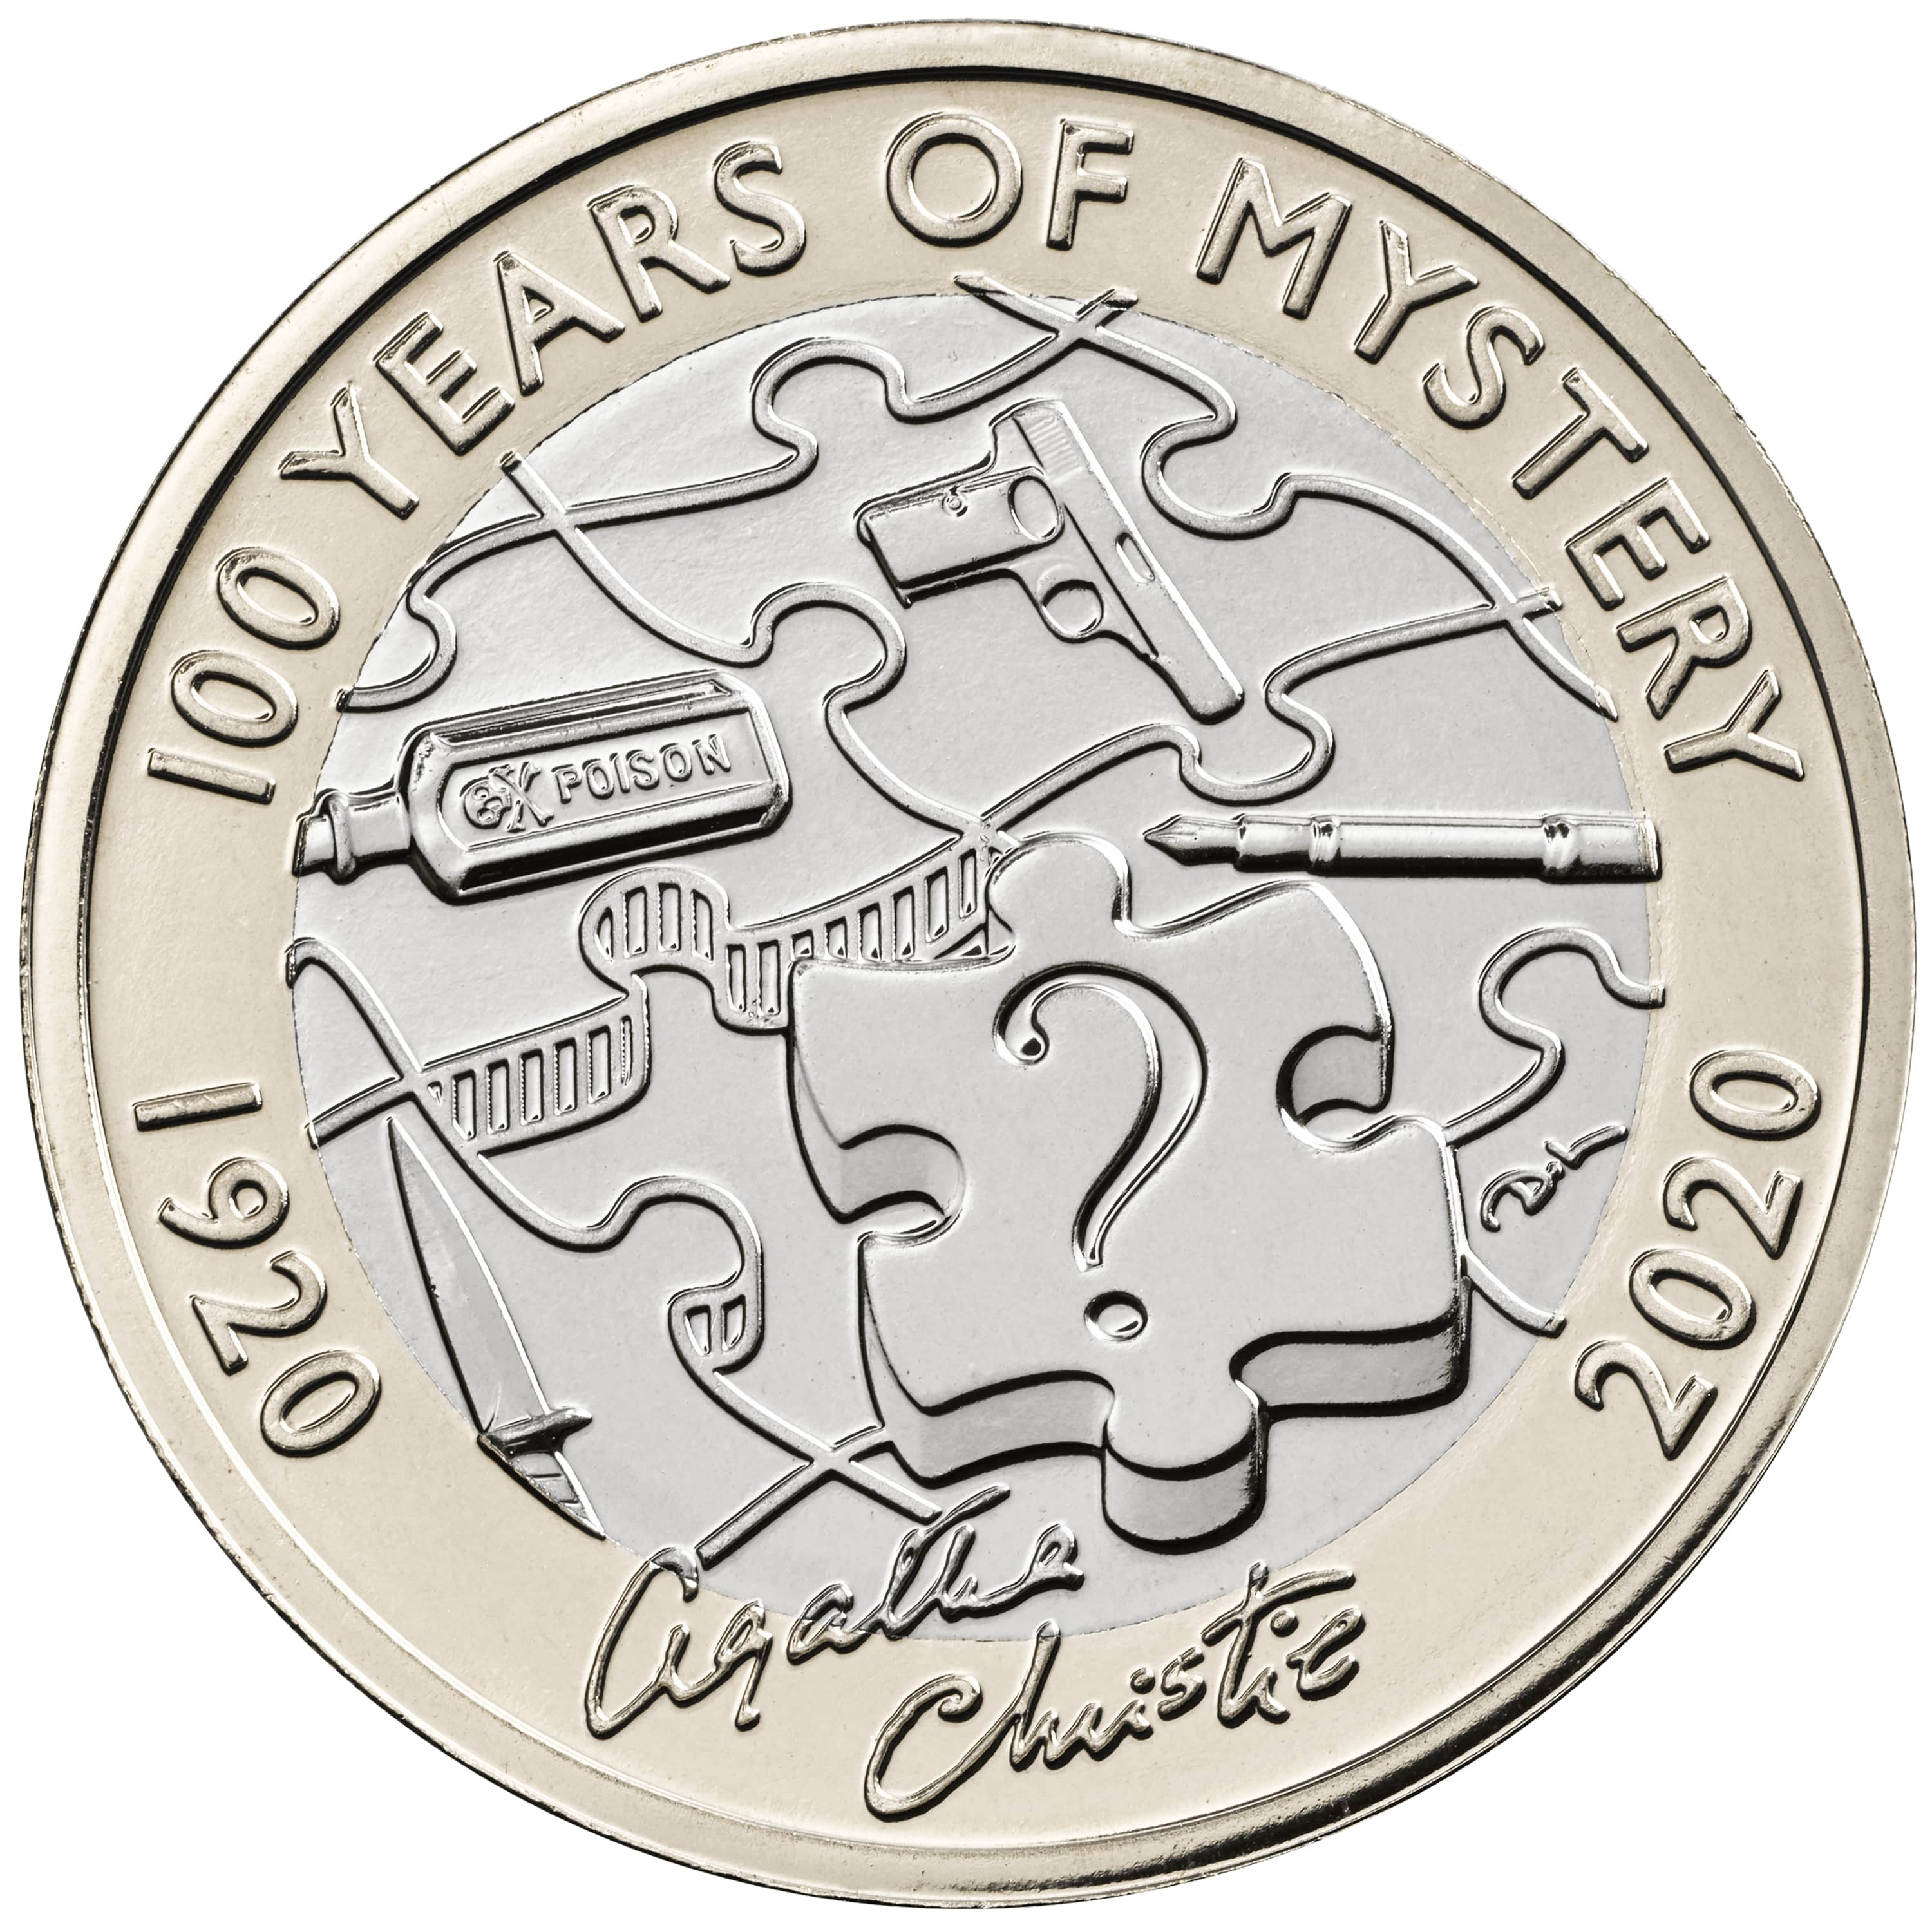 Royal Mint coins